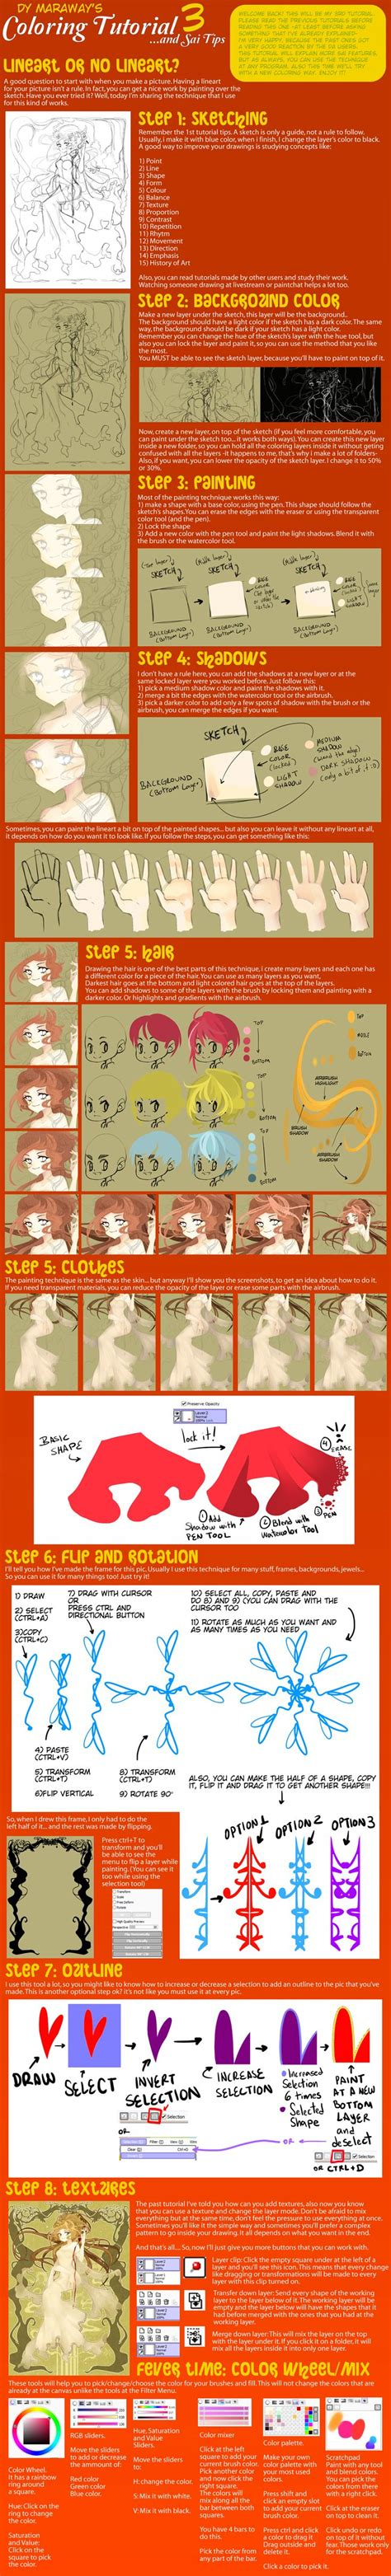 paint tool sai tutorial clothes 507 best images about anime clothing on